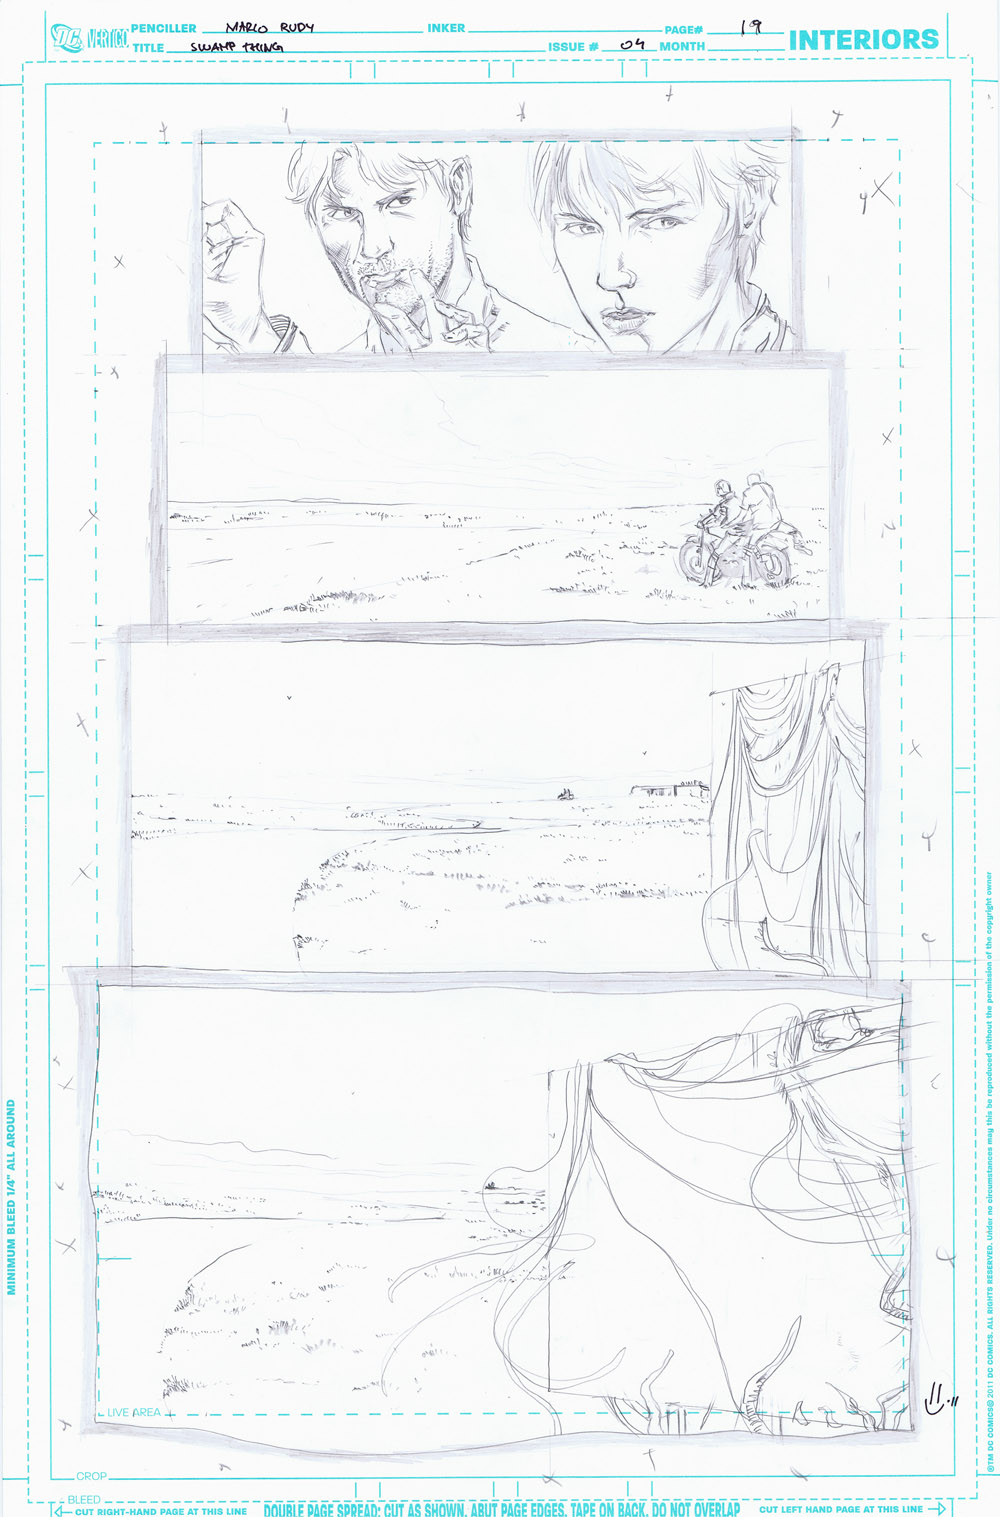 Swamp Thing #04 - page 19